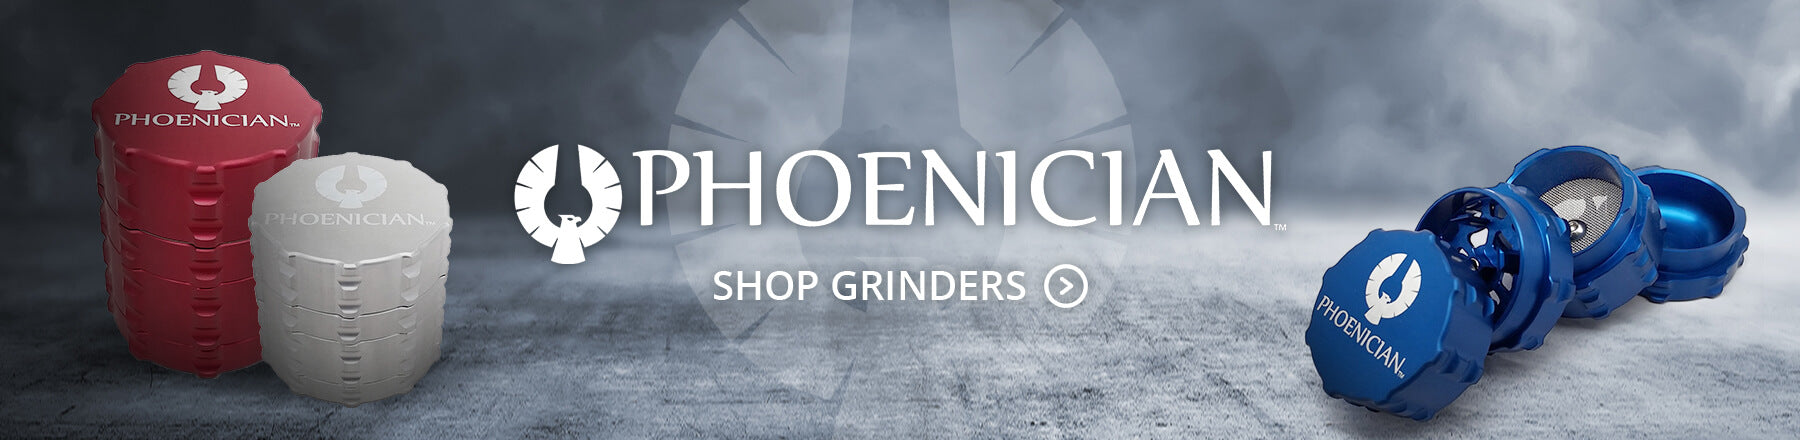 Phoenician Grinders On Sale Free Shipping Best Grinder